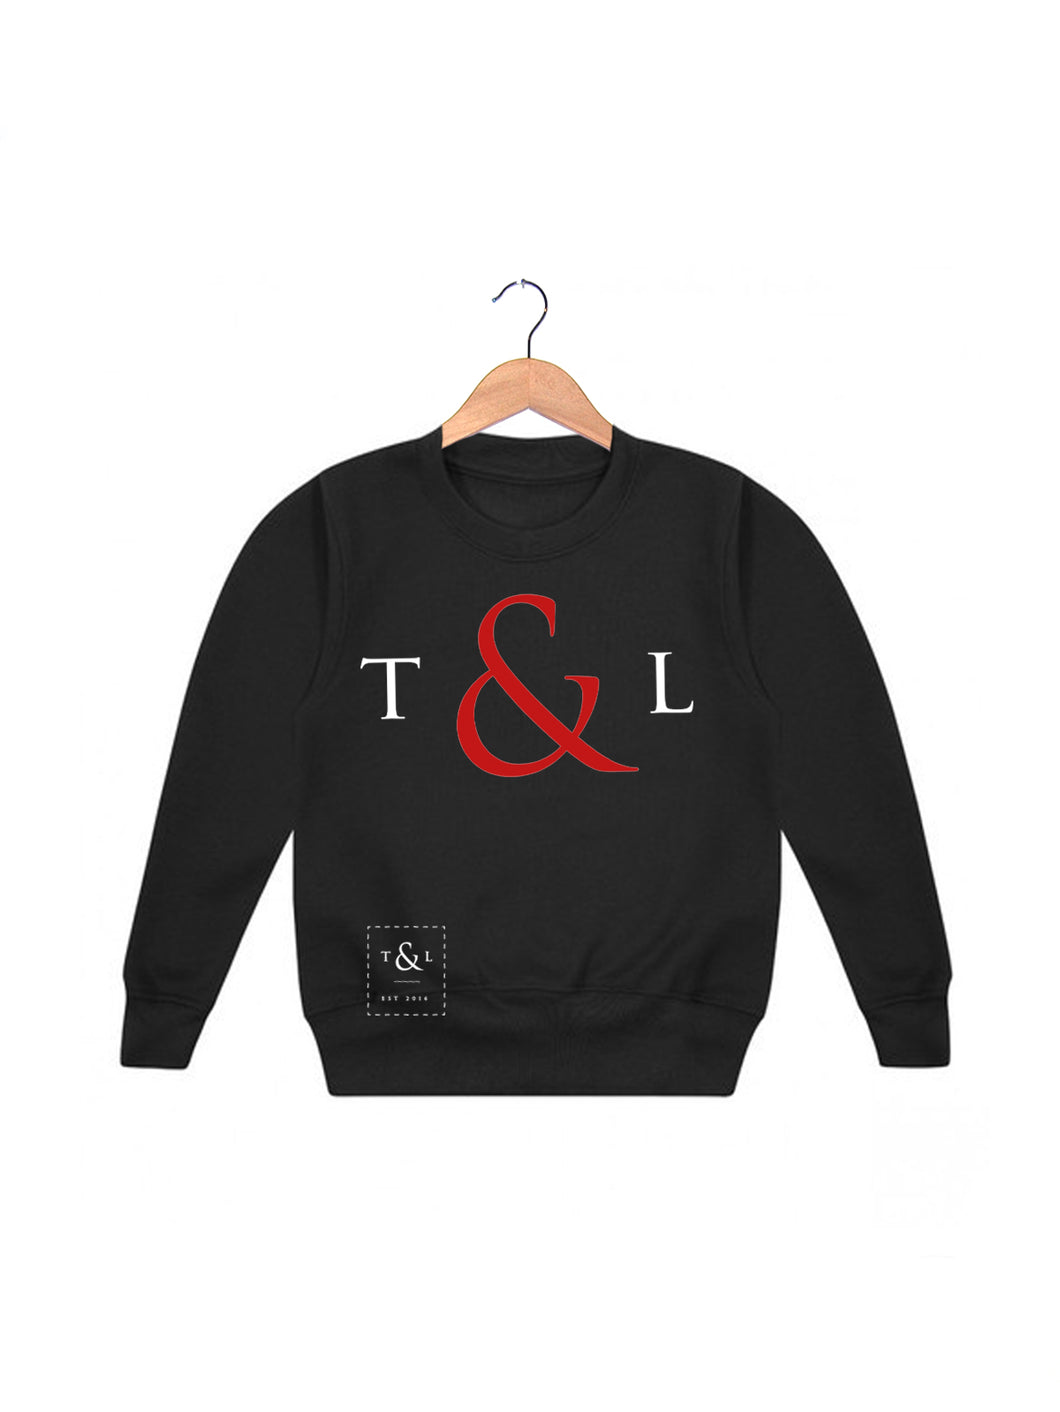 Signature Range | Kid's Sweater